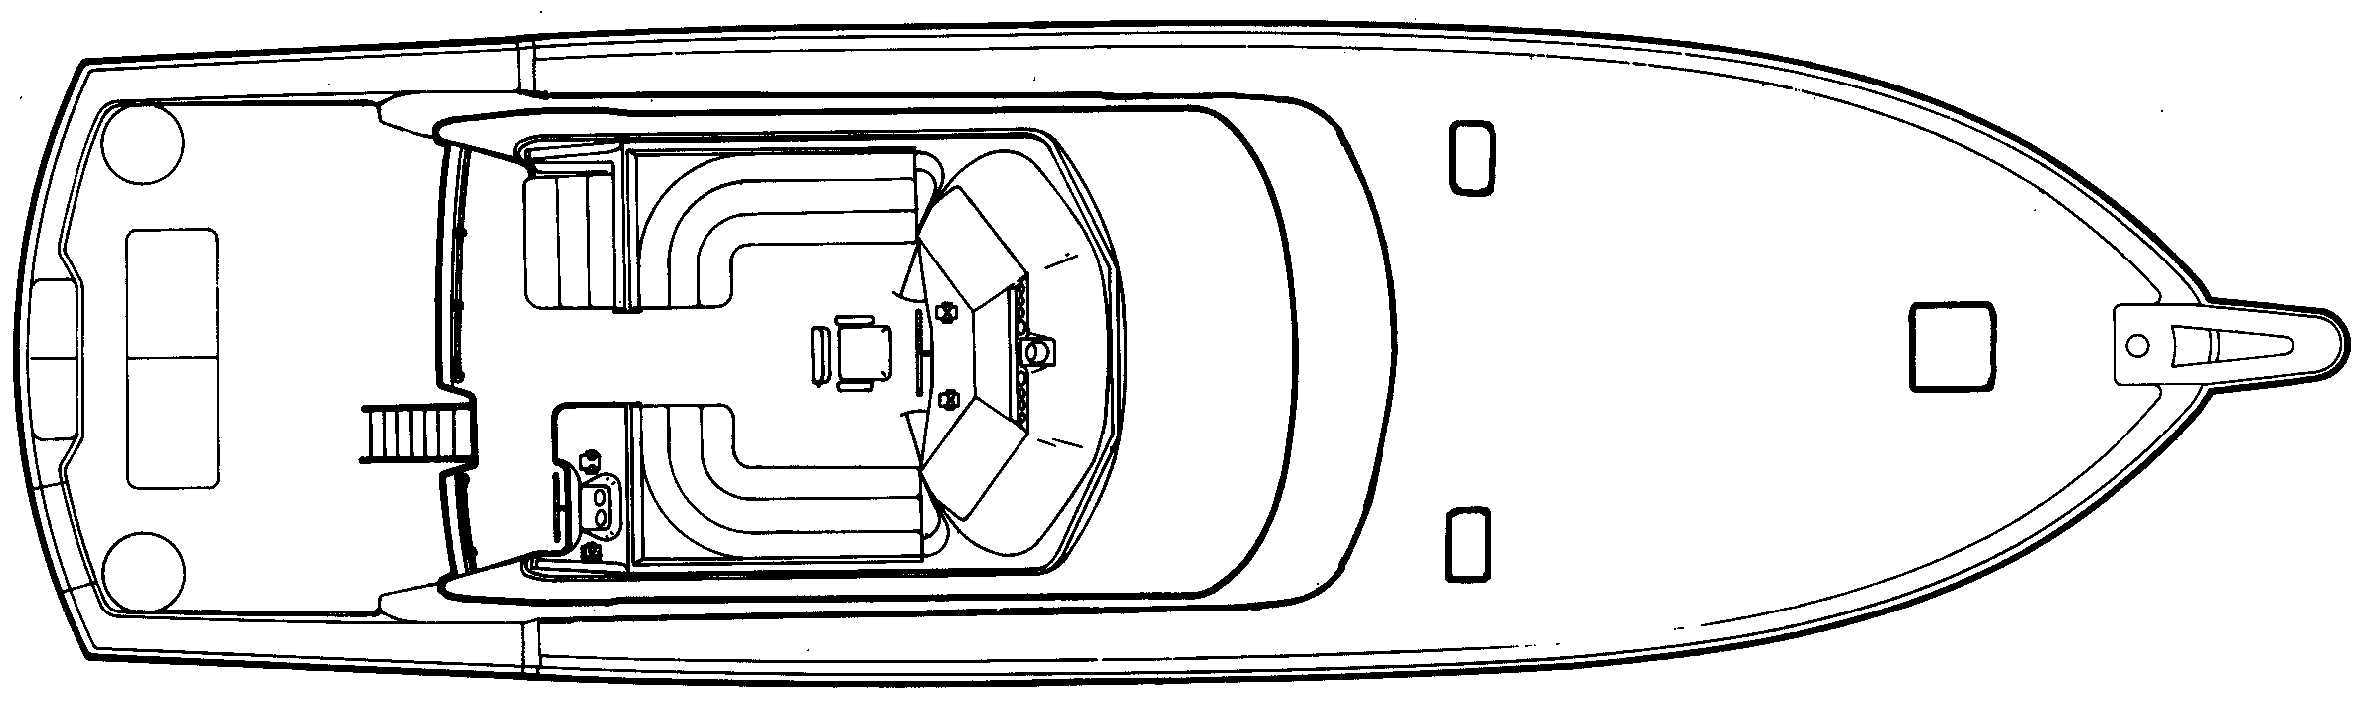 58 Convertible Floor Plan 2